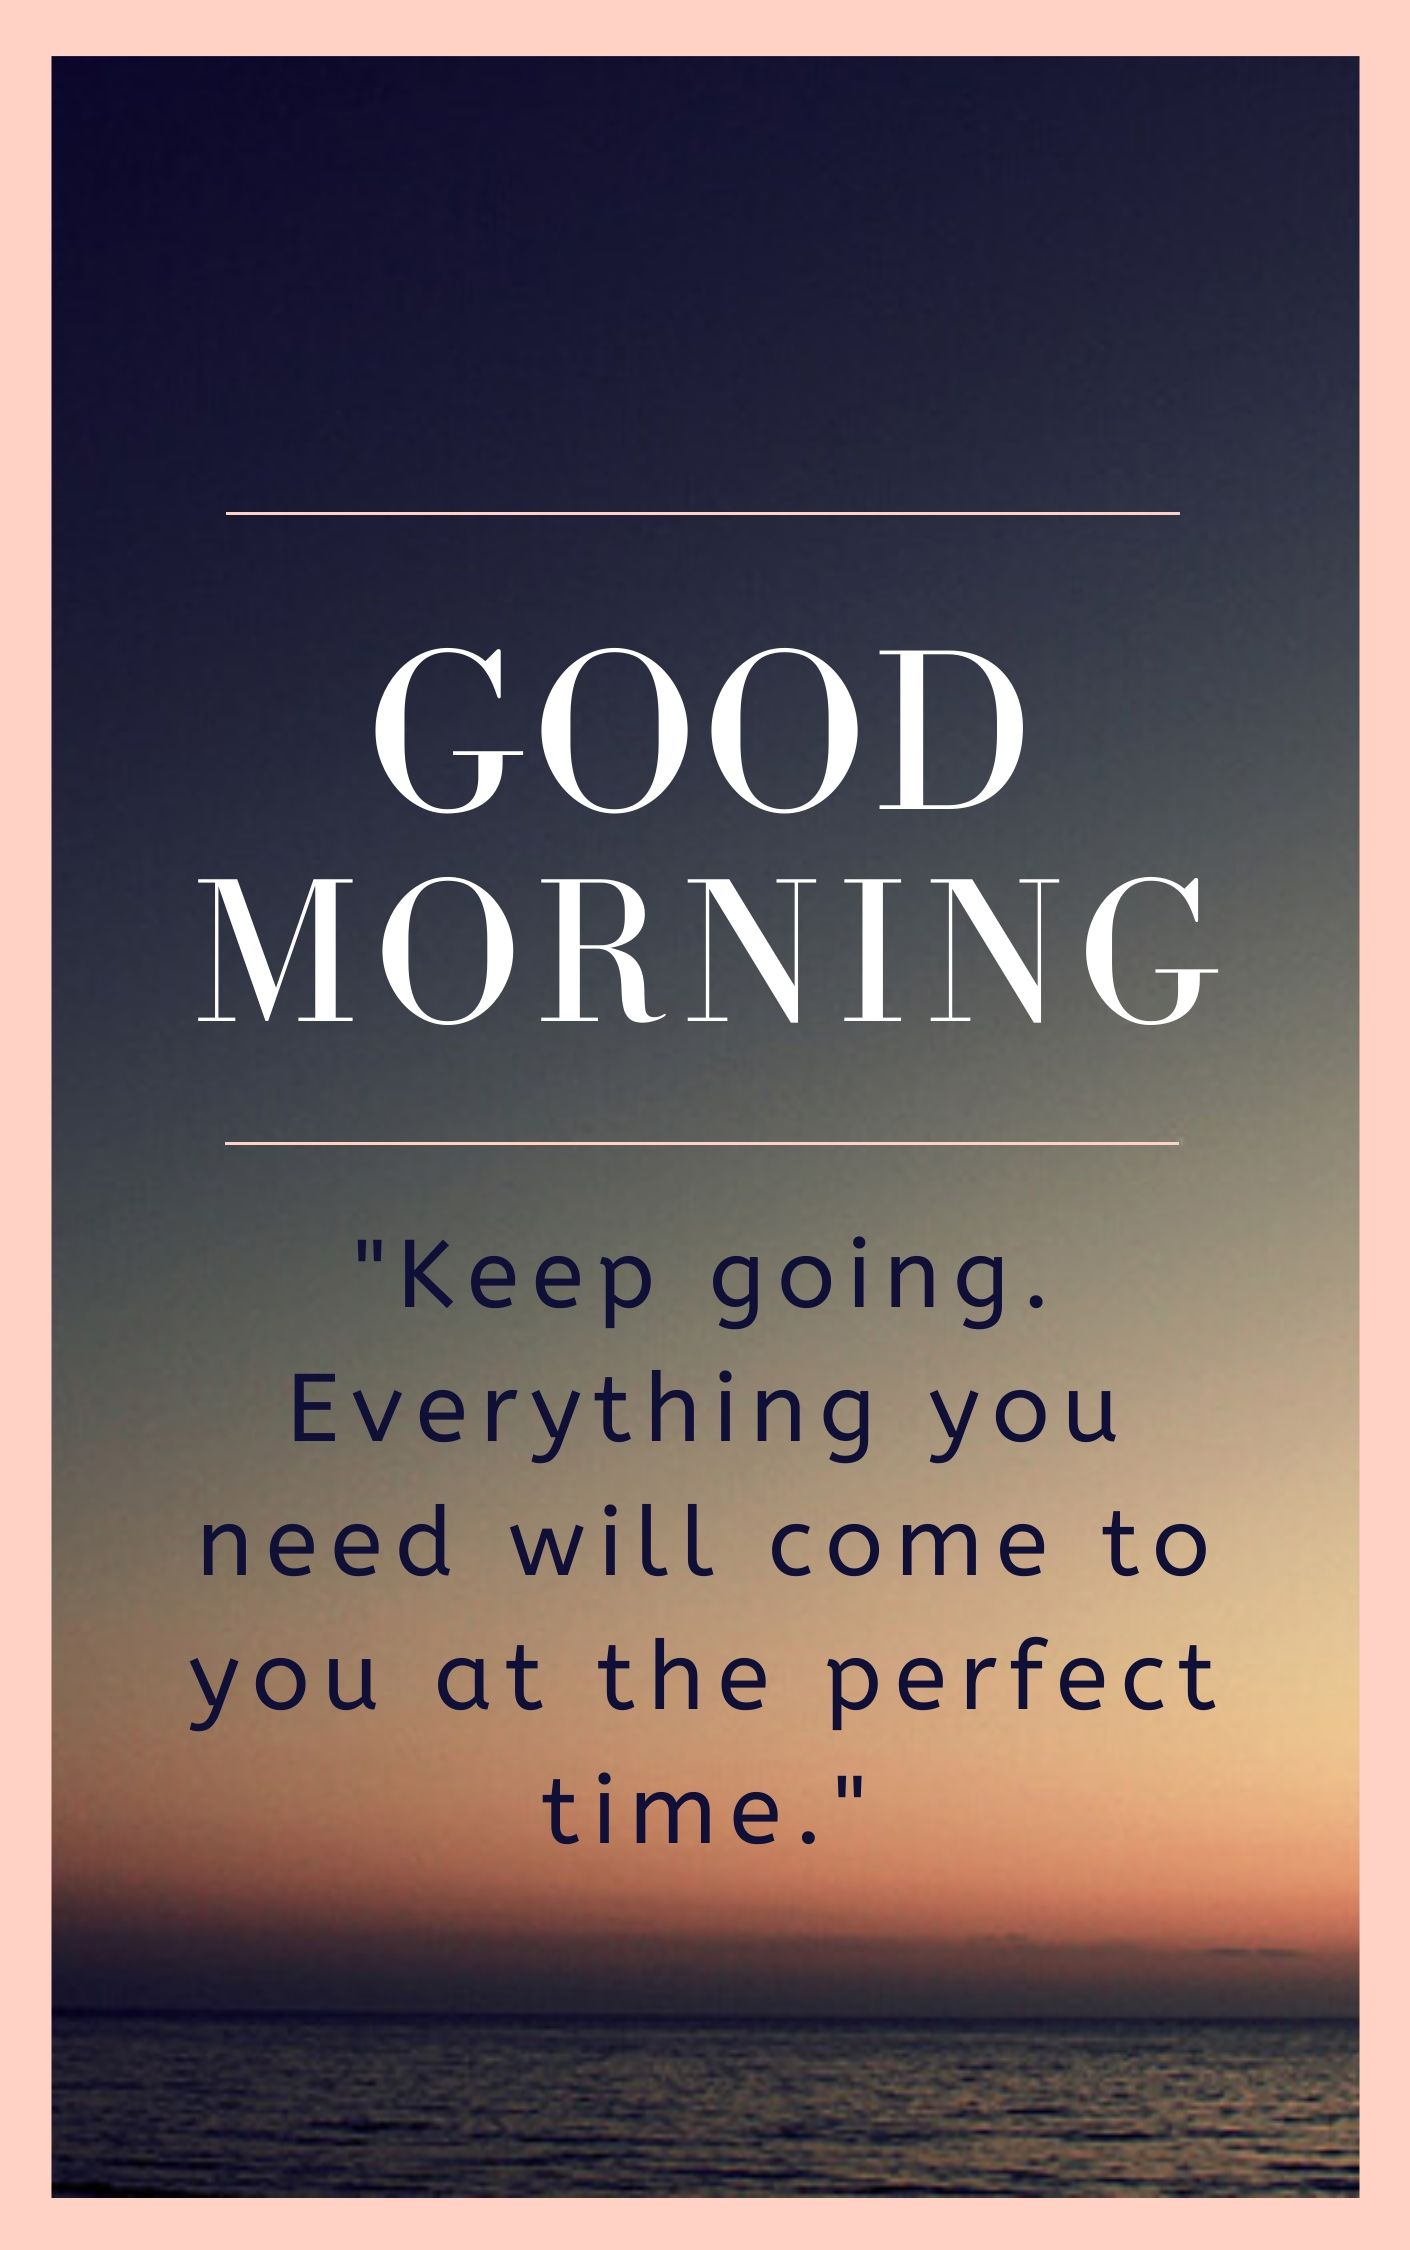 Keep going. Everything you need will come to you at the perfect time Good Morning Quote Image full HD free download.